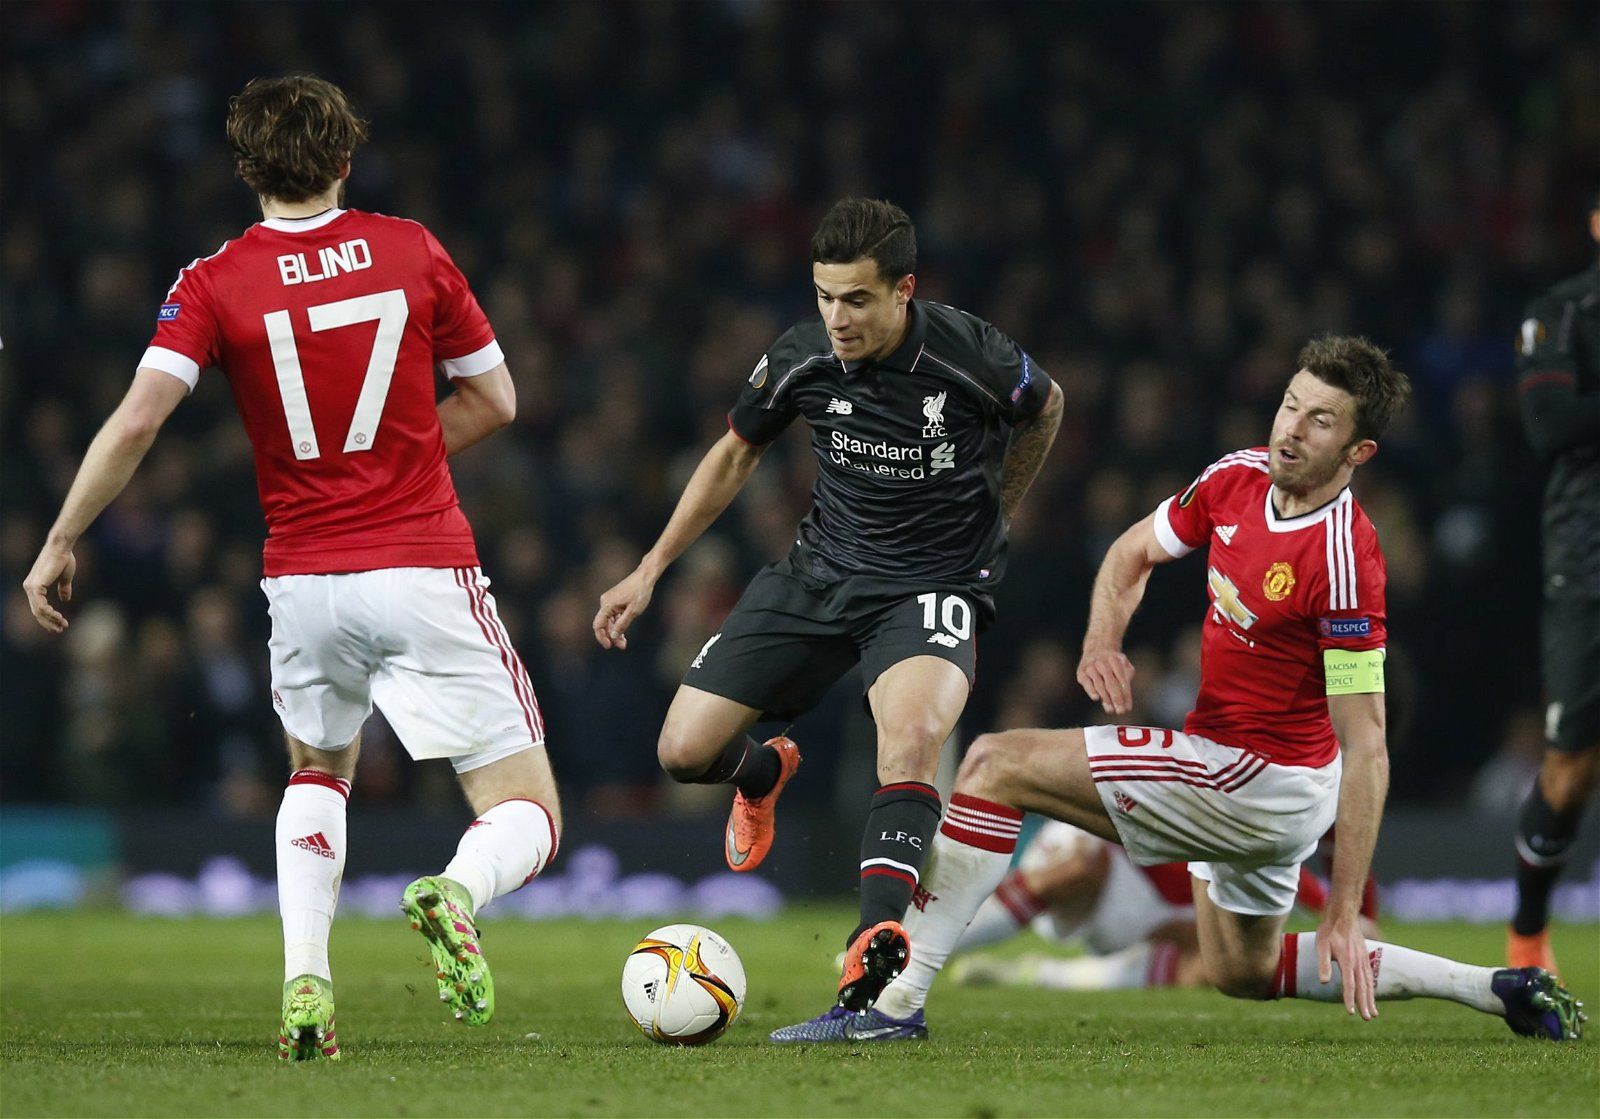 Philippe Coutinho tries to dribble past Daley Blind and Michael Carrick